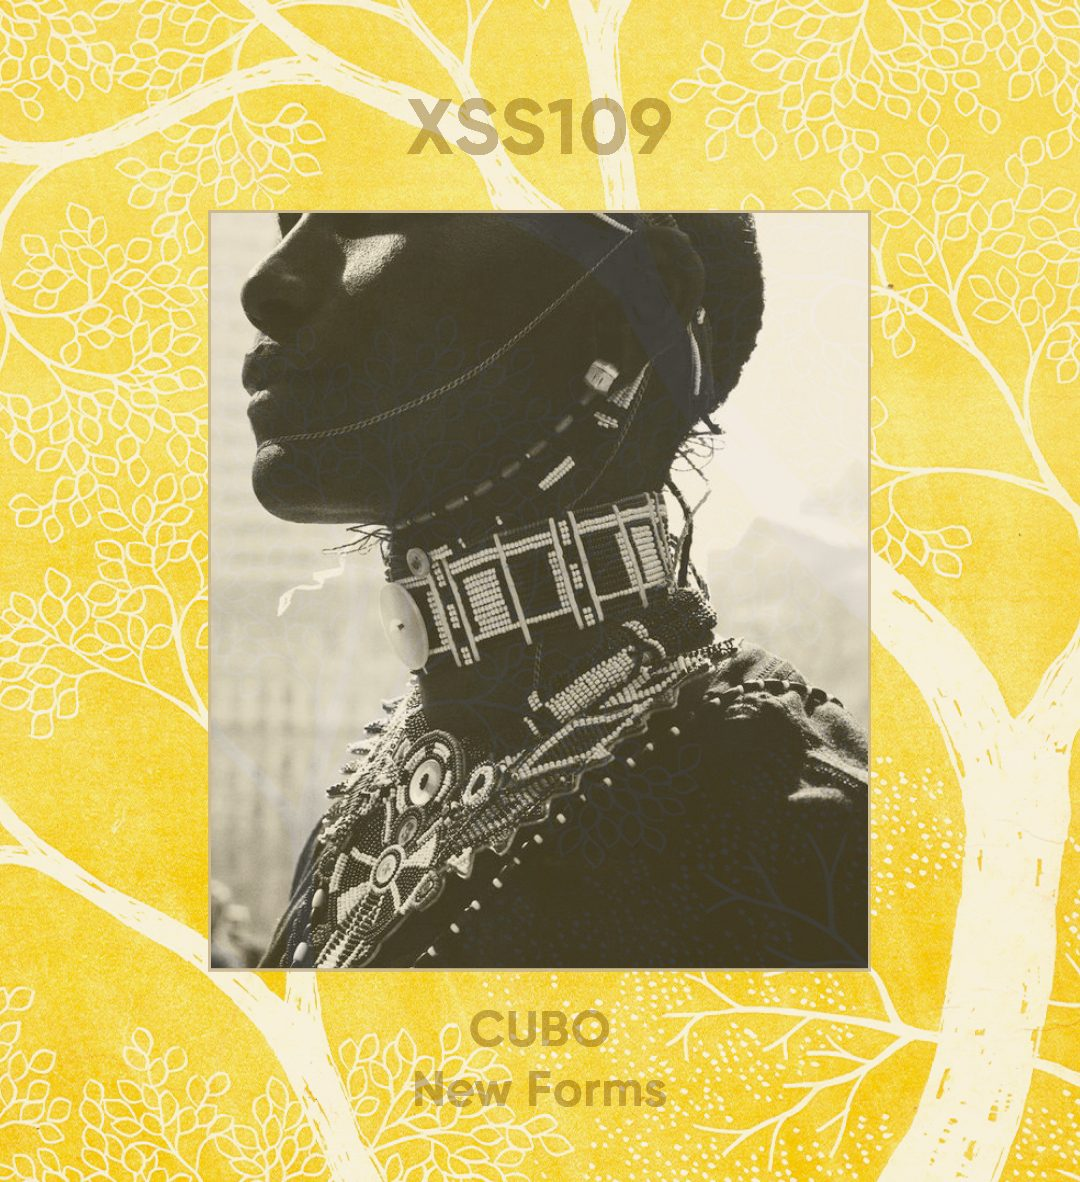 XSS109 | Cubo | New Forms